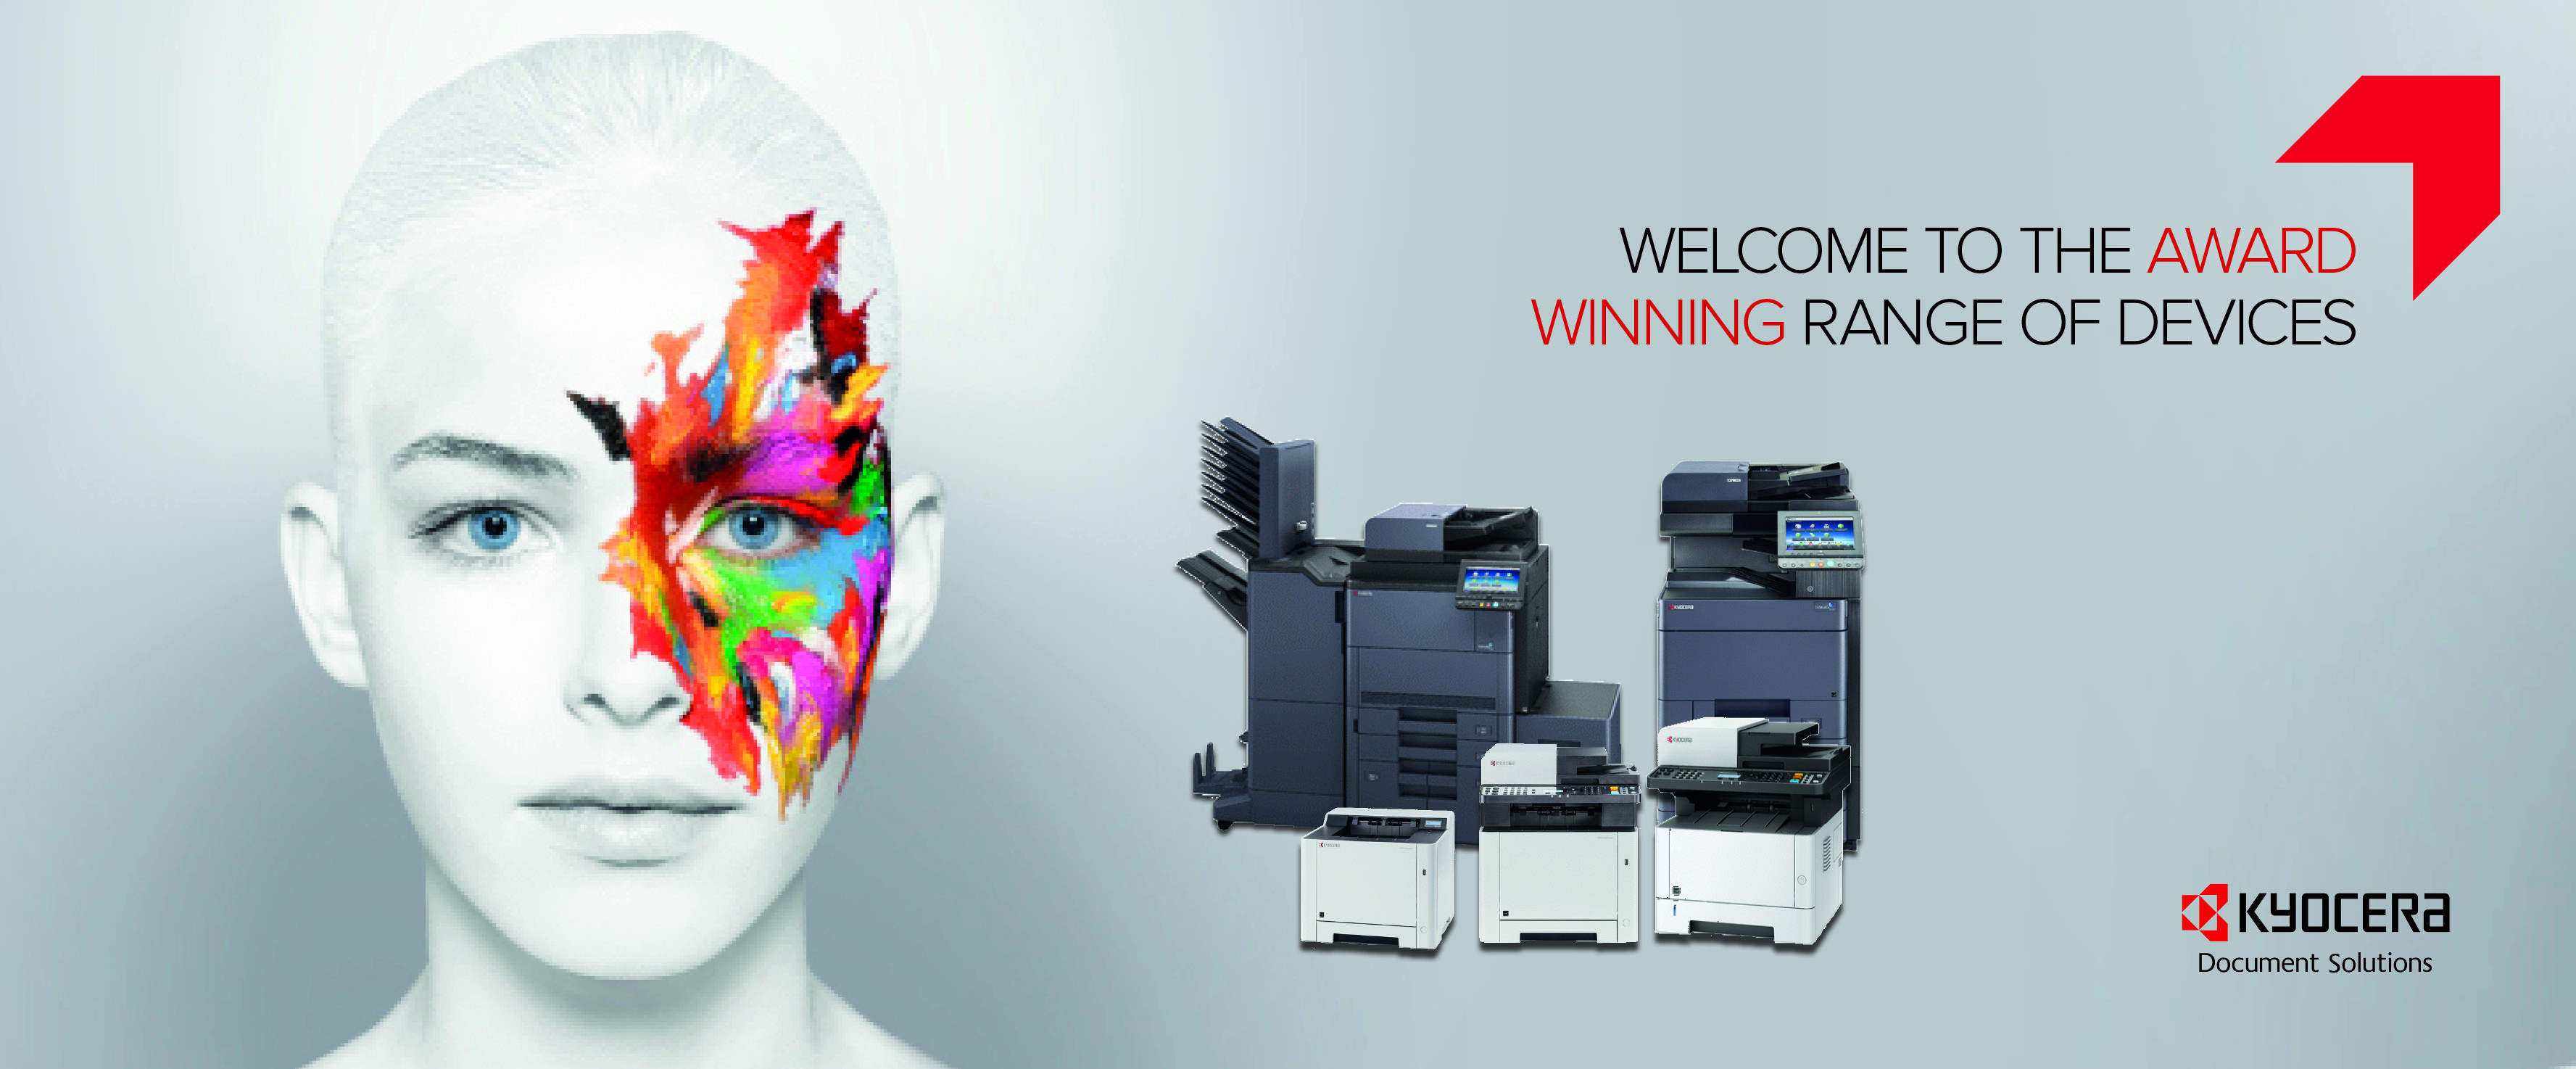 Pulse Digital are suppliers of Award Winning KYOCERA Products